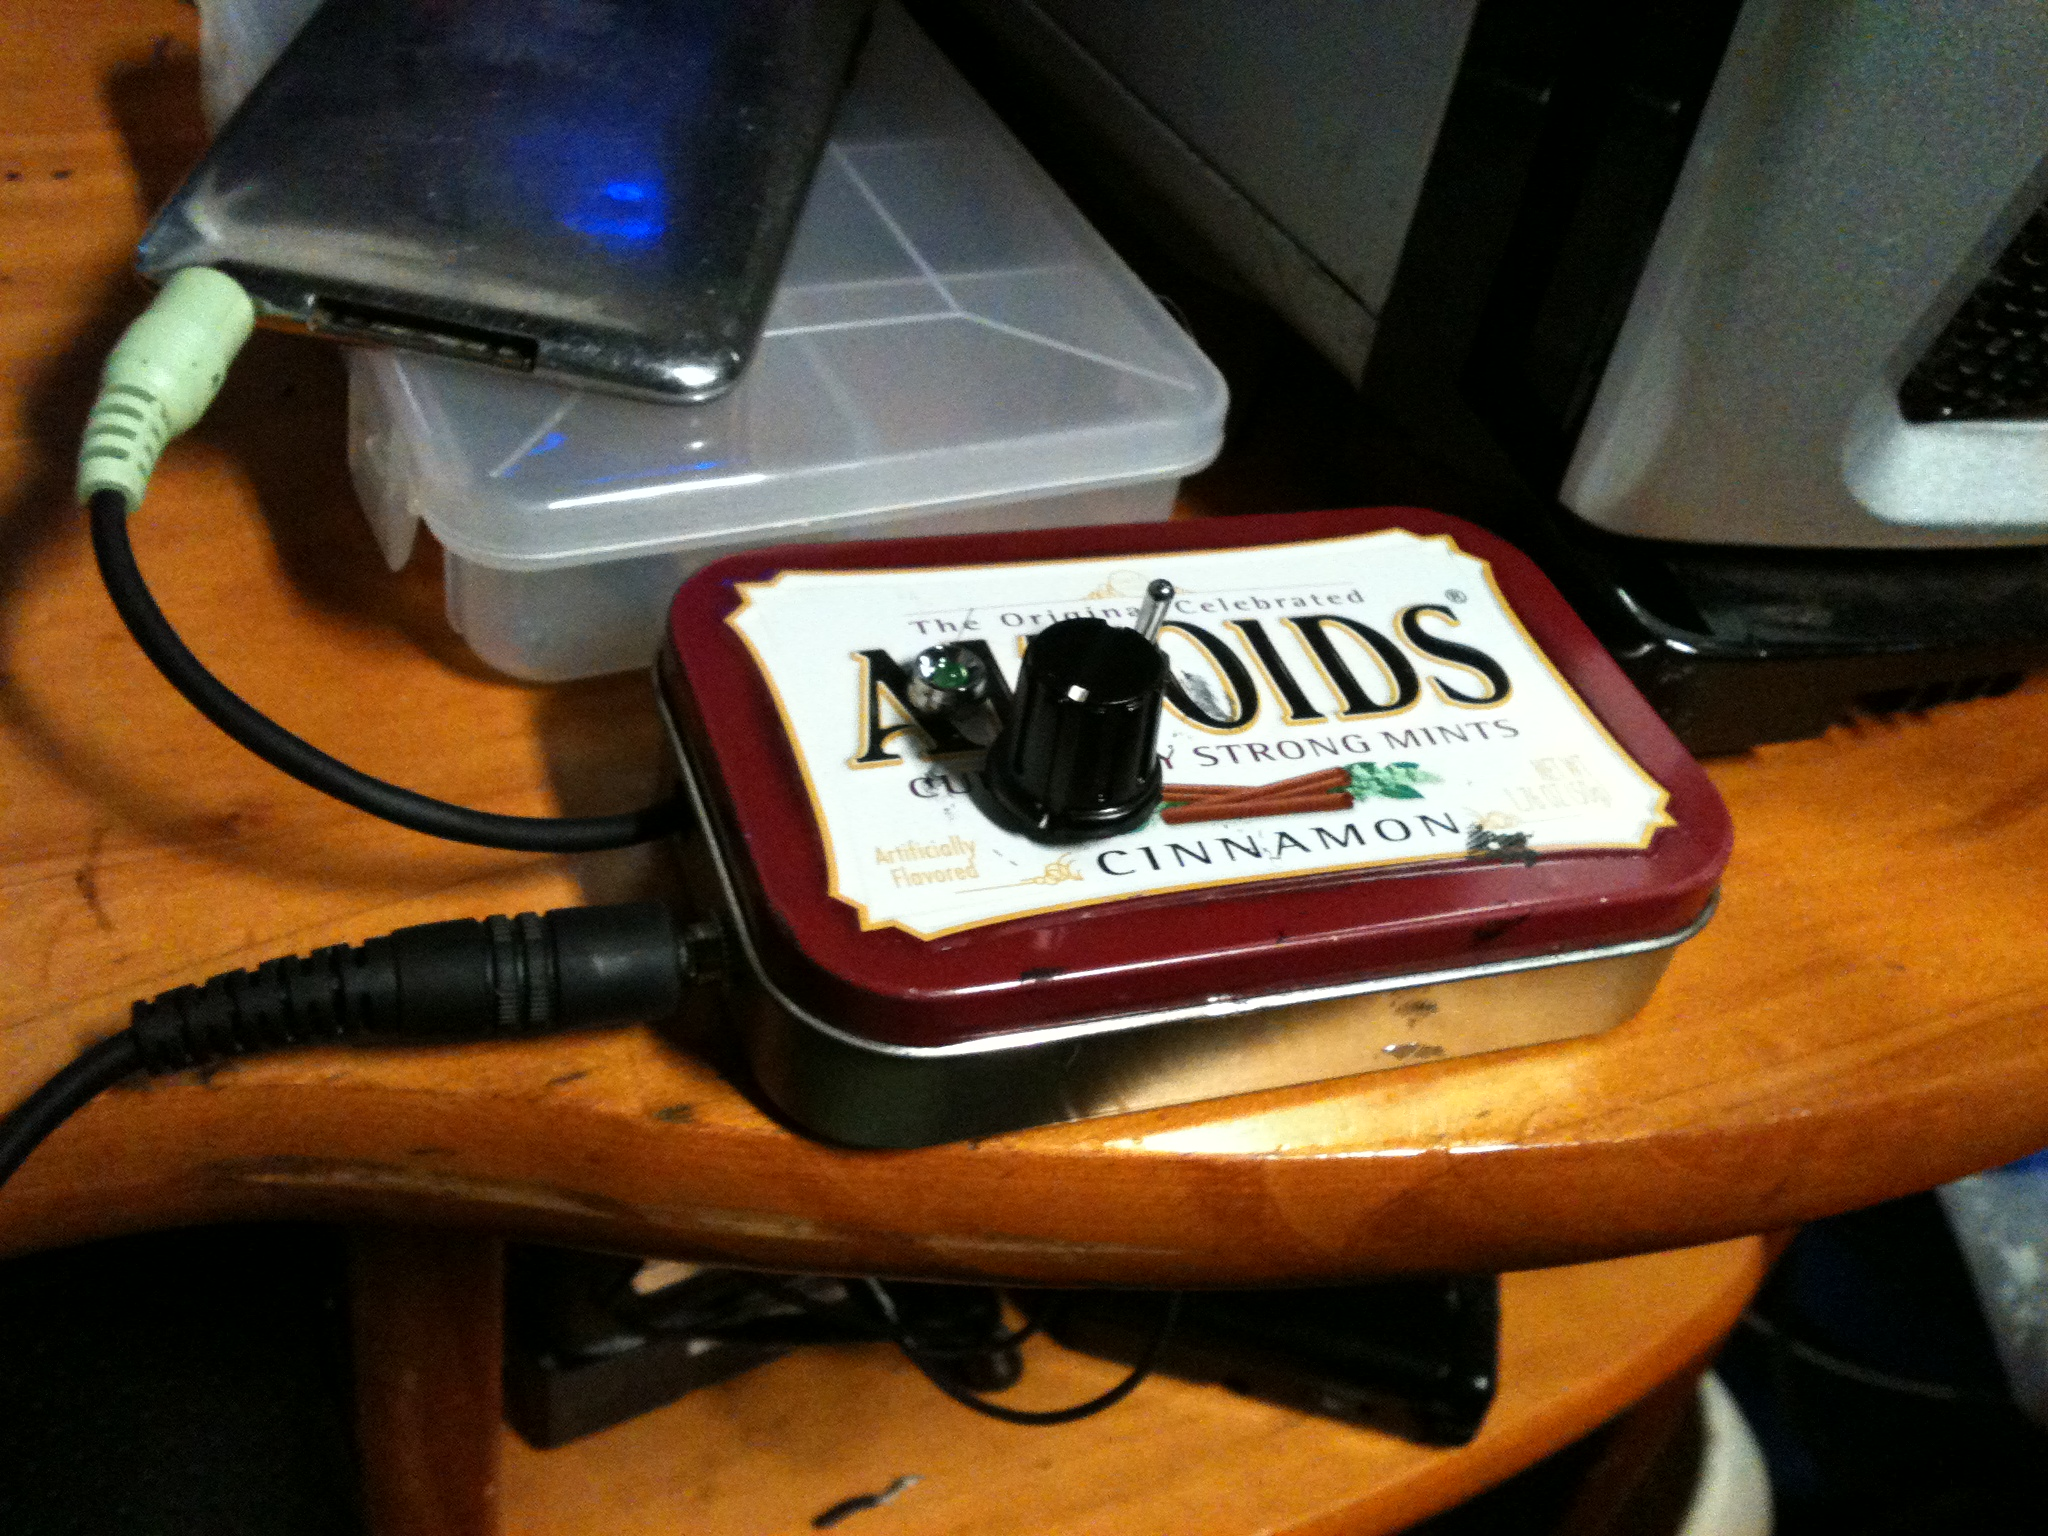 My first Cmoy headphone amp!